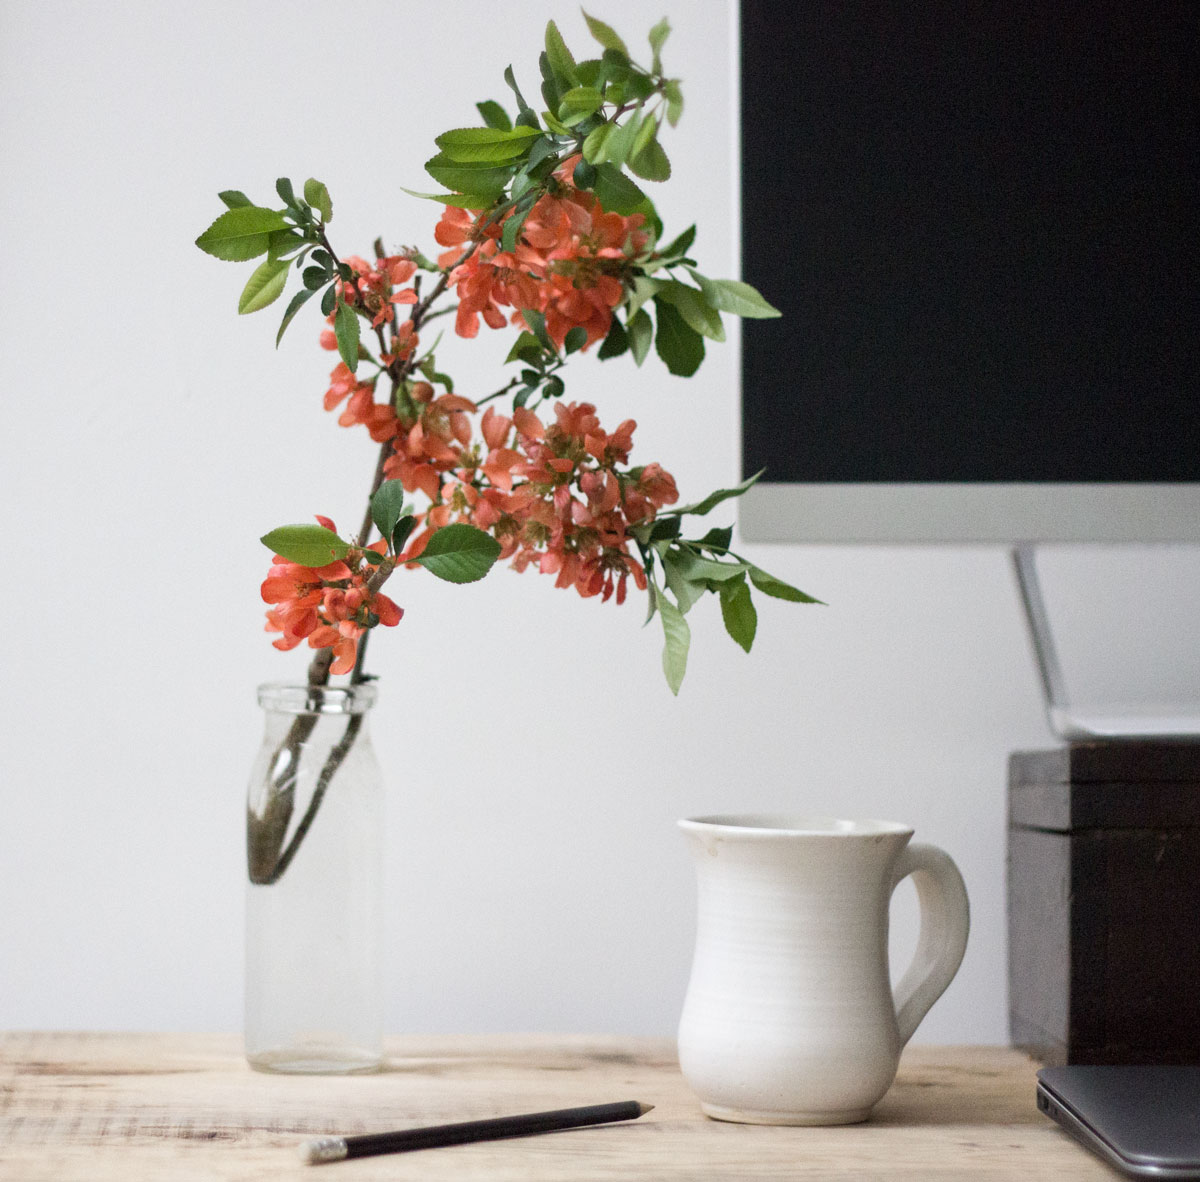 Japanese Yew as desk decor - how to bring nature inside to decorate